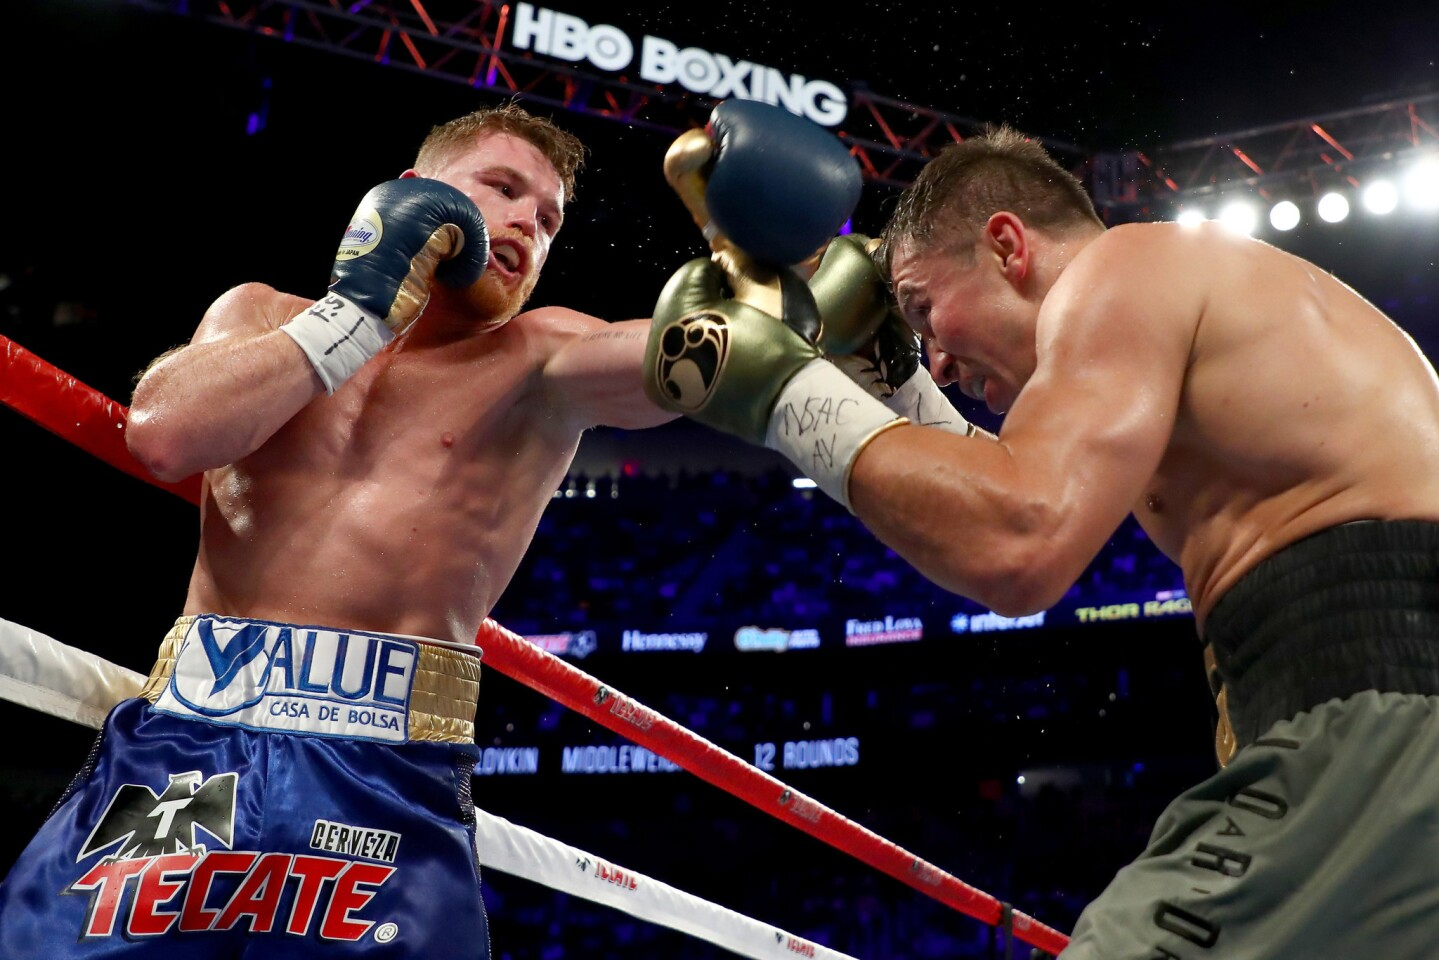 Gennady Golovkin, right, tries to evade a punch by Canelo Alvarez during their middleweight championionship bout.